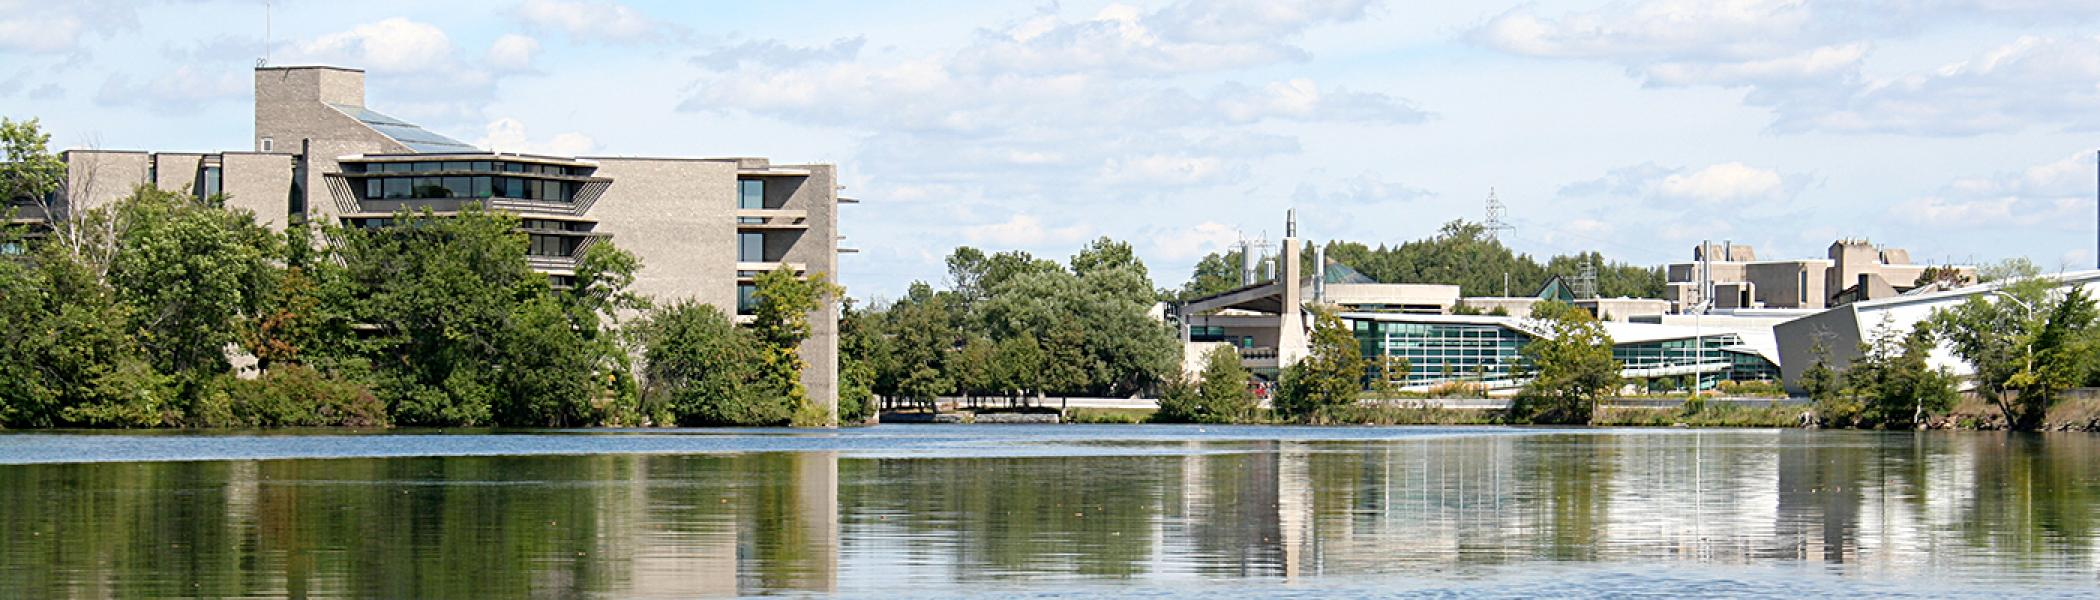 A summer spring time vista looking at the Bata library and the Science Complex from the river.